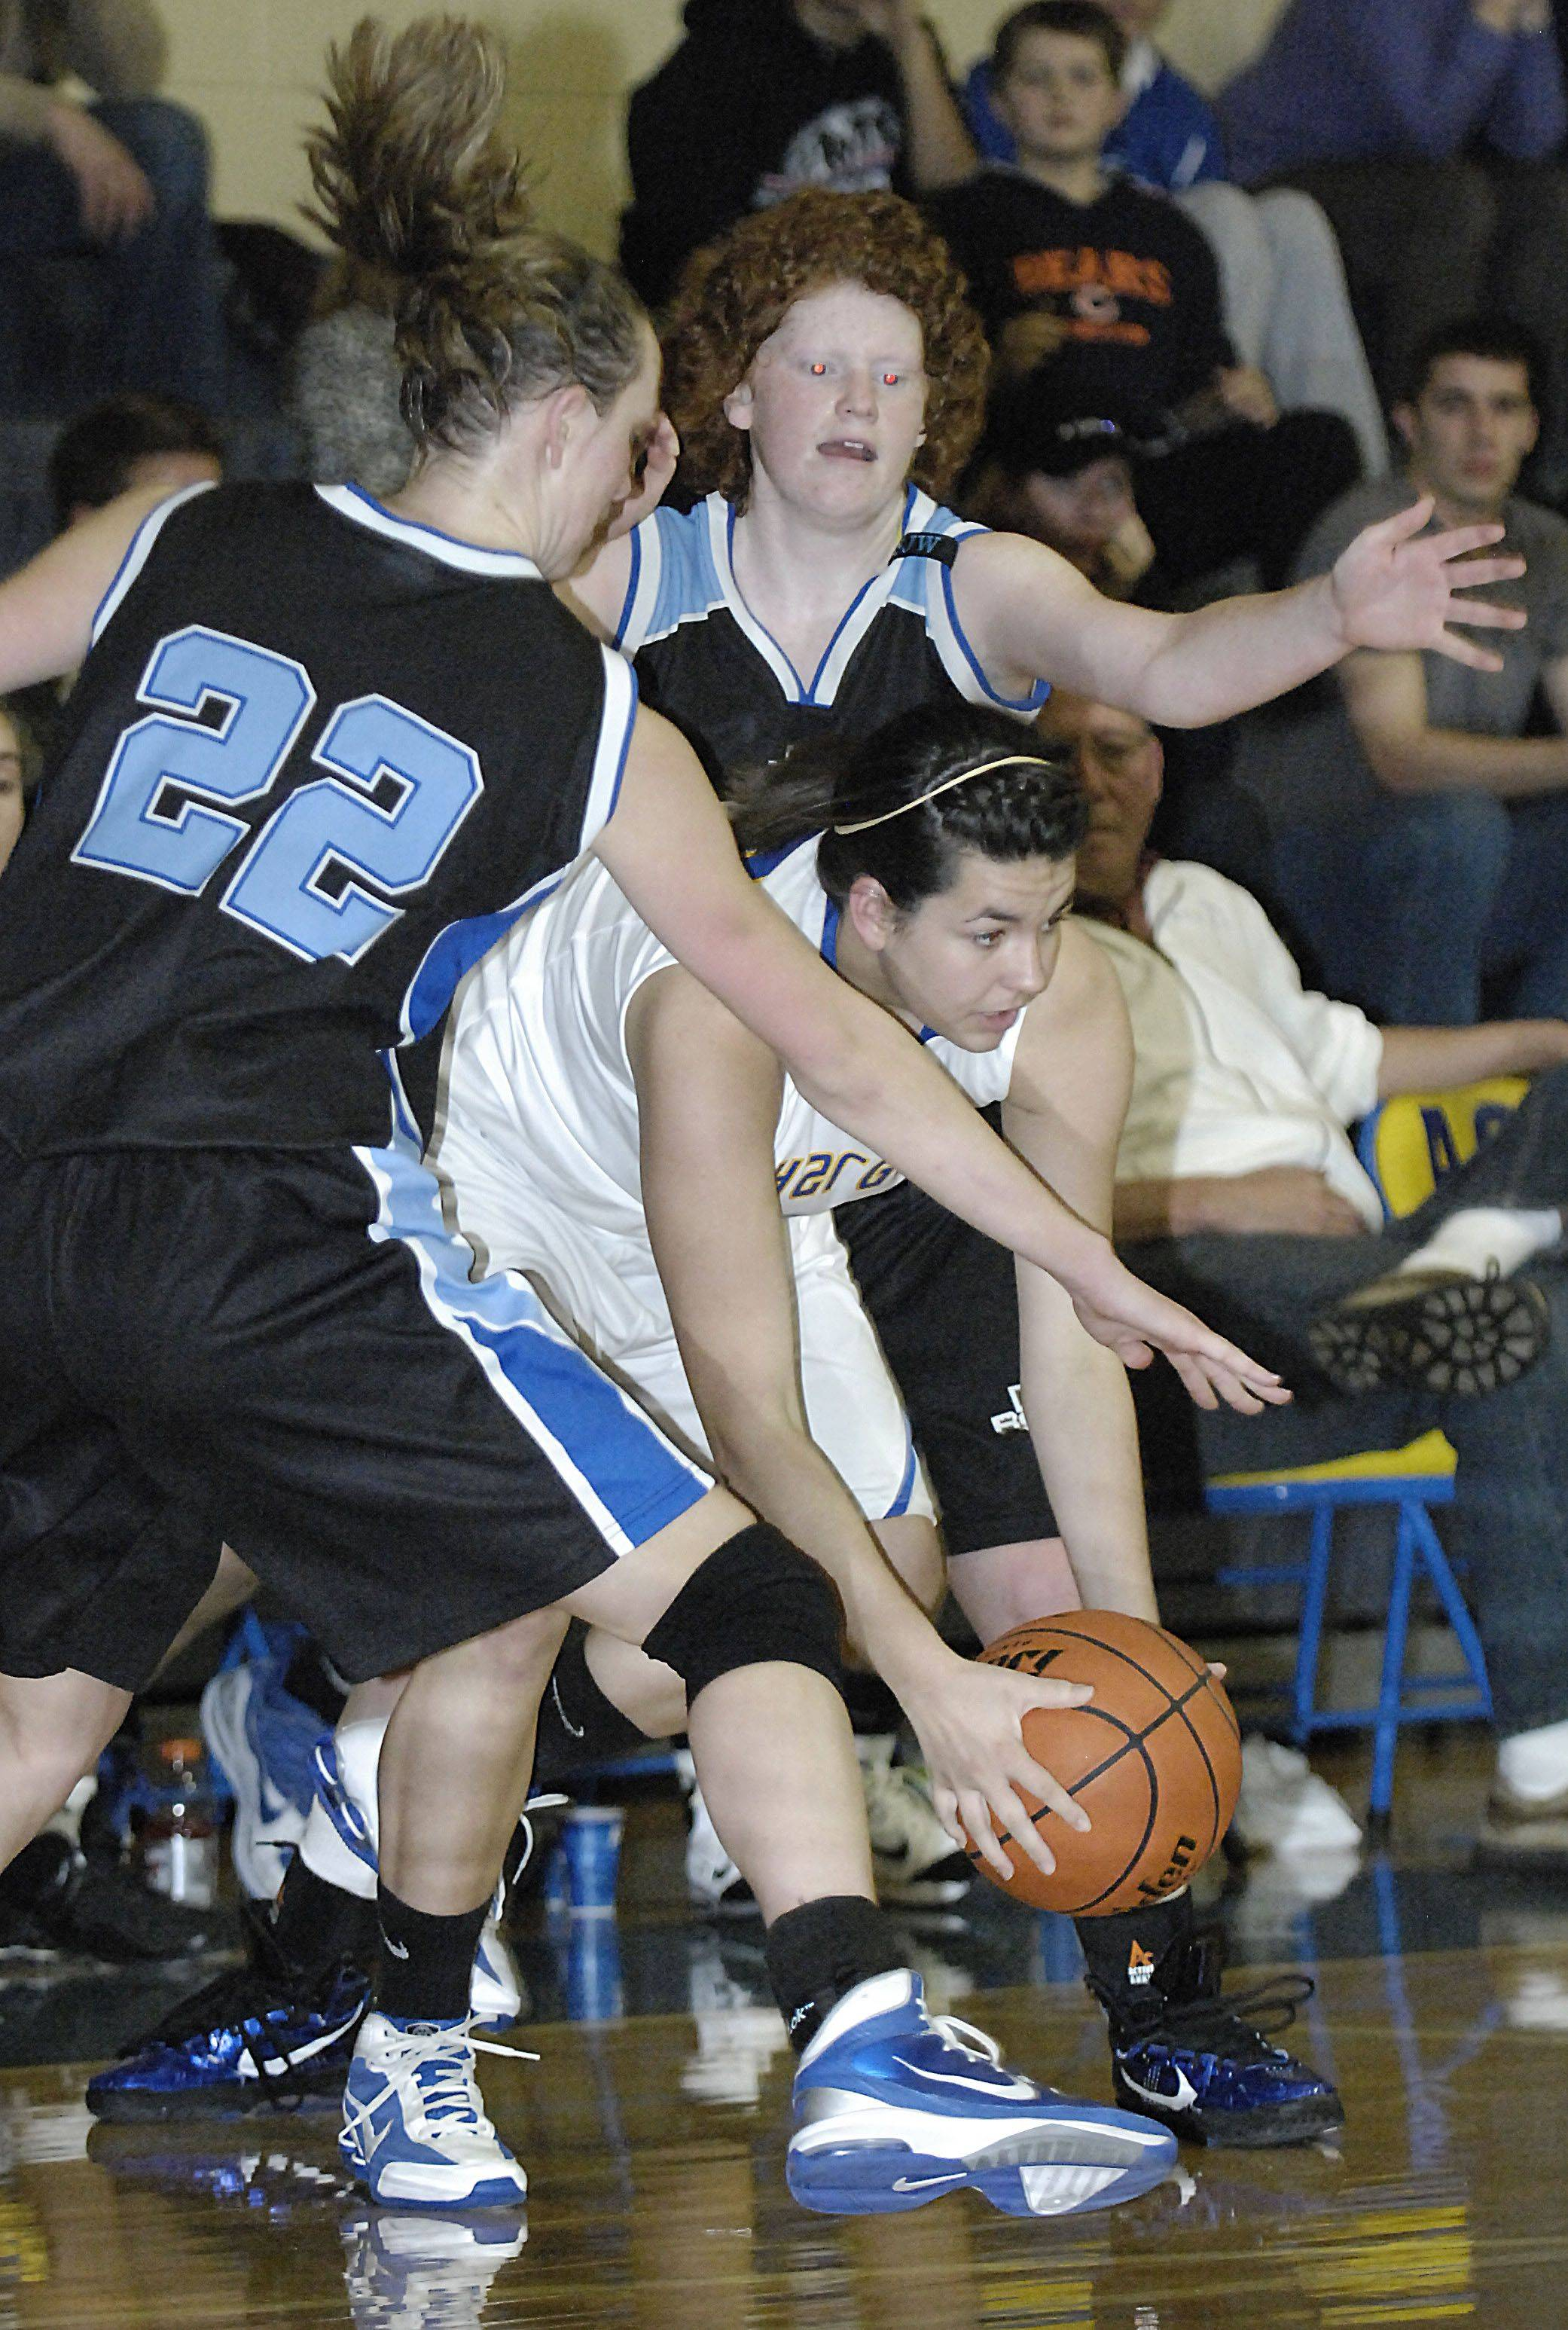 Images from the Rosary vs. Aurora Central girls basketball game Tuesday, January 11, 2011.